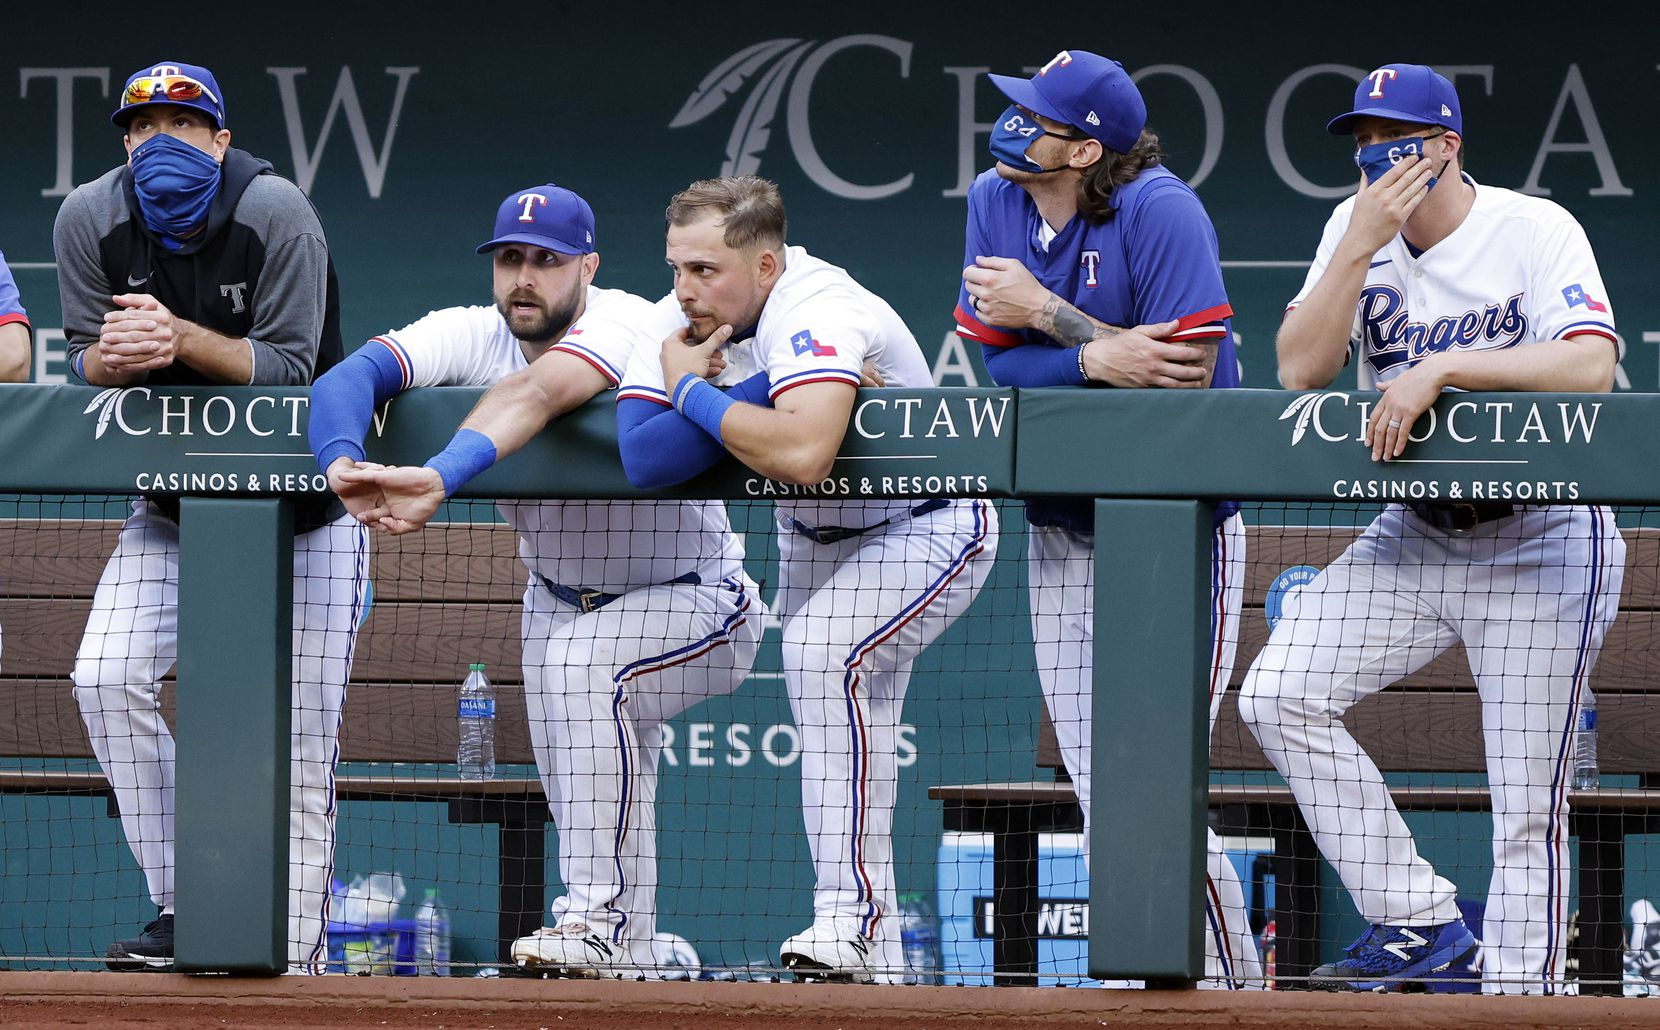 Texas Rangers players hang on the dugout rail late in the ninth inning against the Toronto Blue Jays at Globe Life Field in Arlington, Monday, April 5, 2021. The Texas Rangers were facing the Toronto Blue Jays in their home opener. The Rangers lost, 6-4. (Tom Fox/The Dallas Morning News)